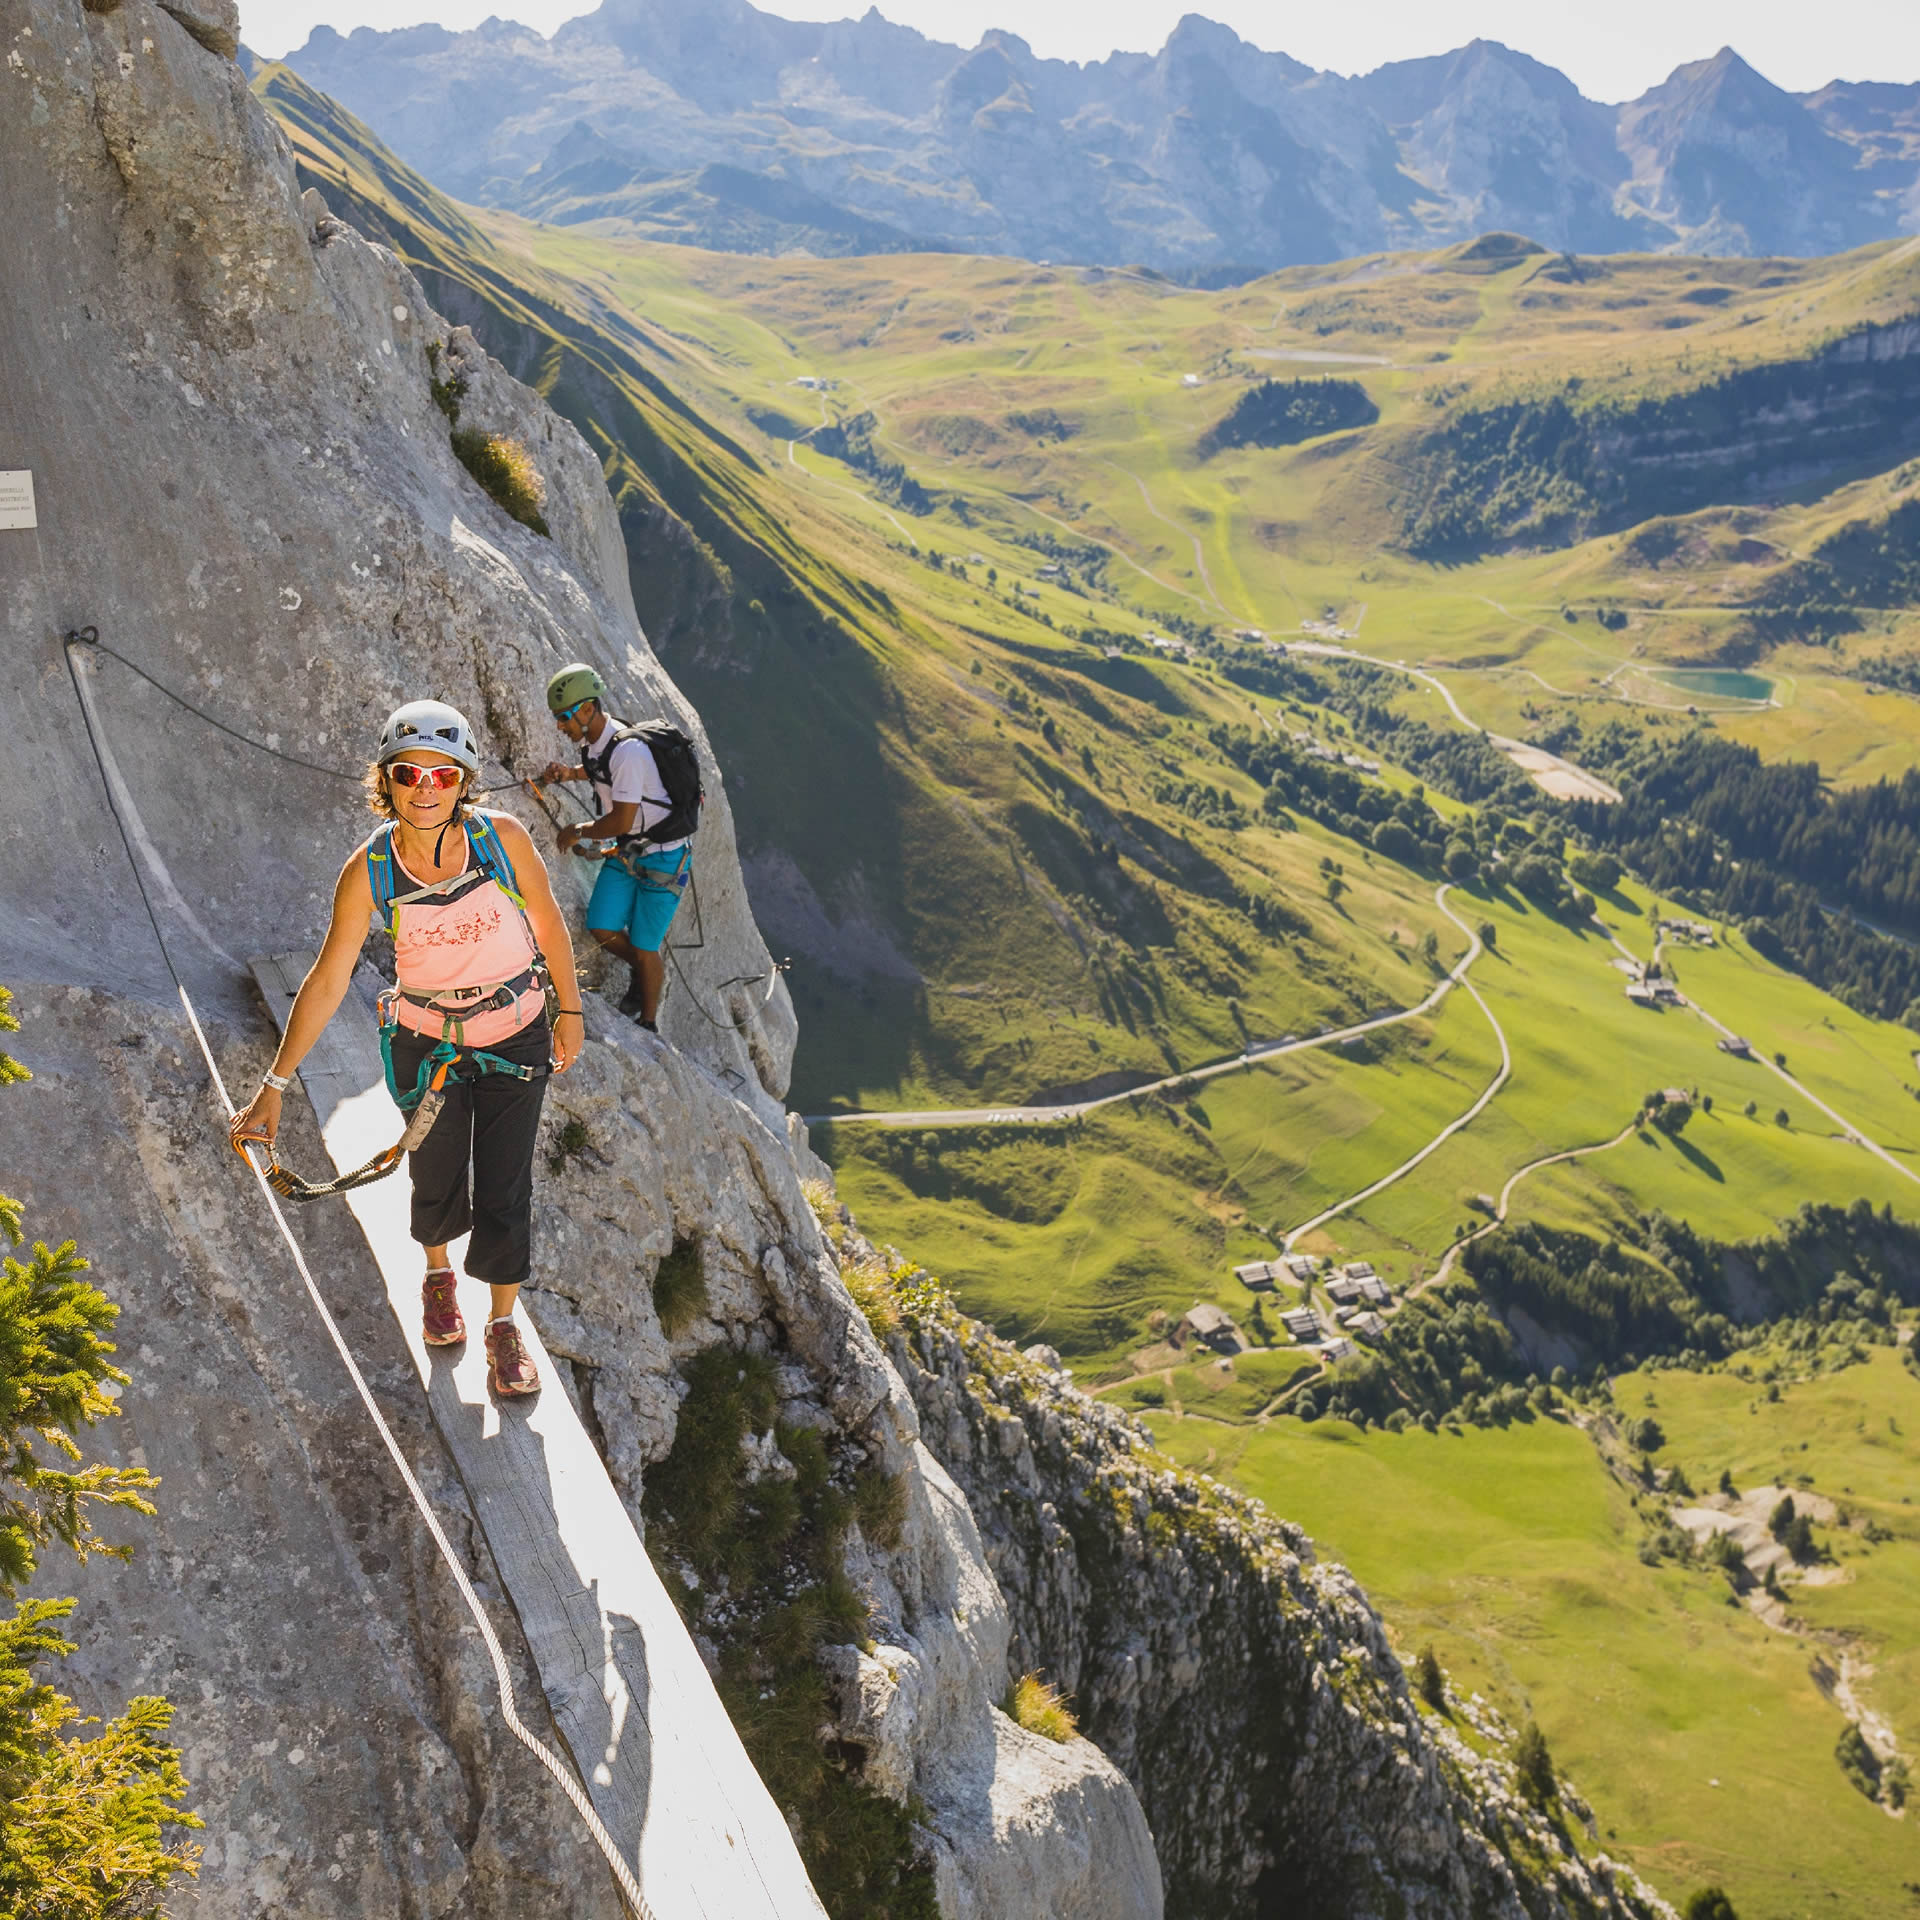 Climbing and via ferrata